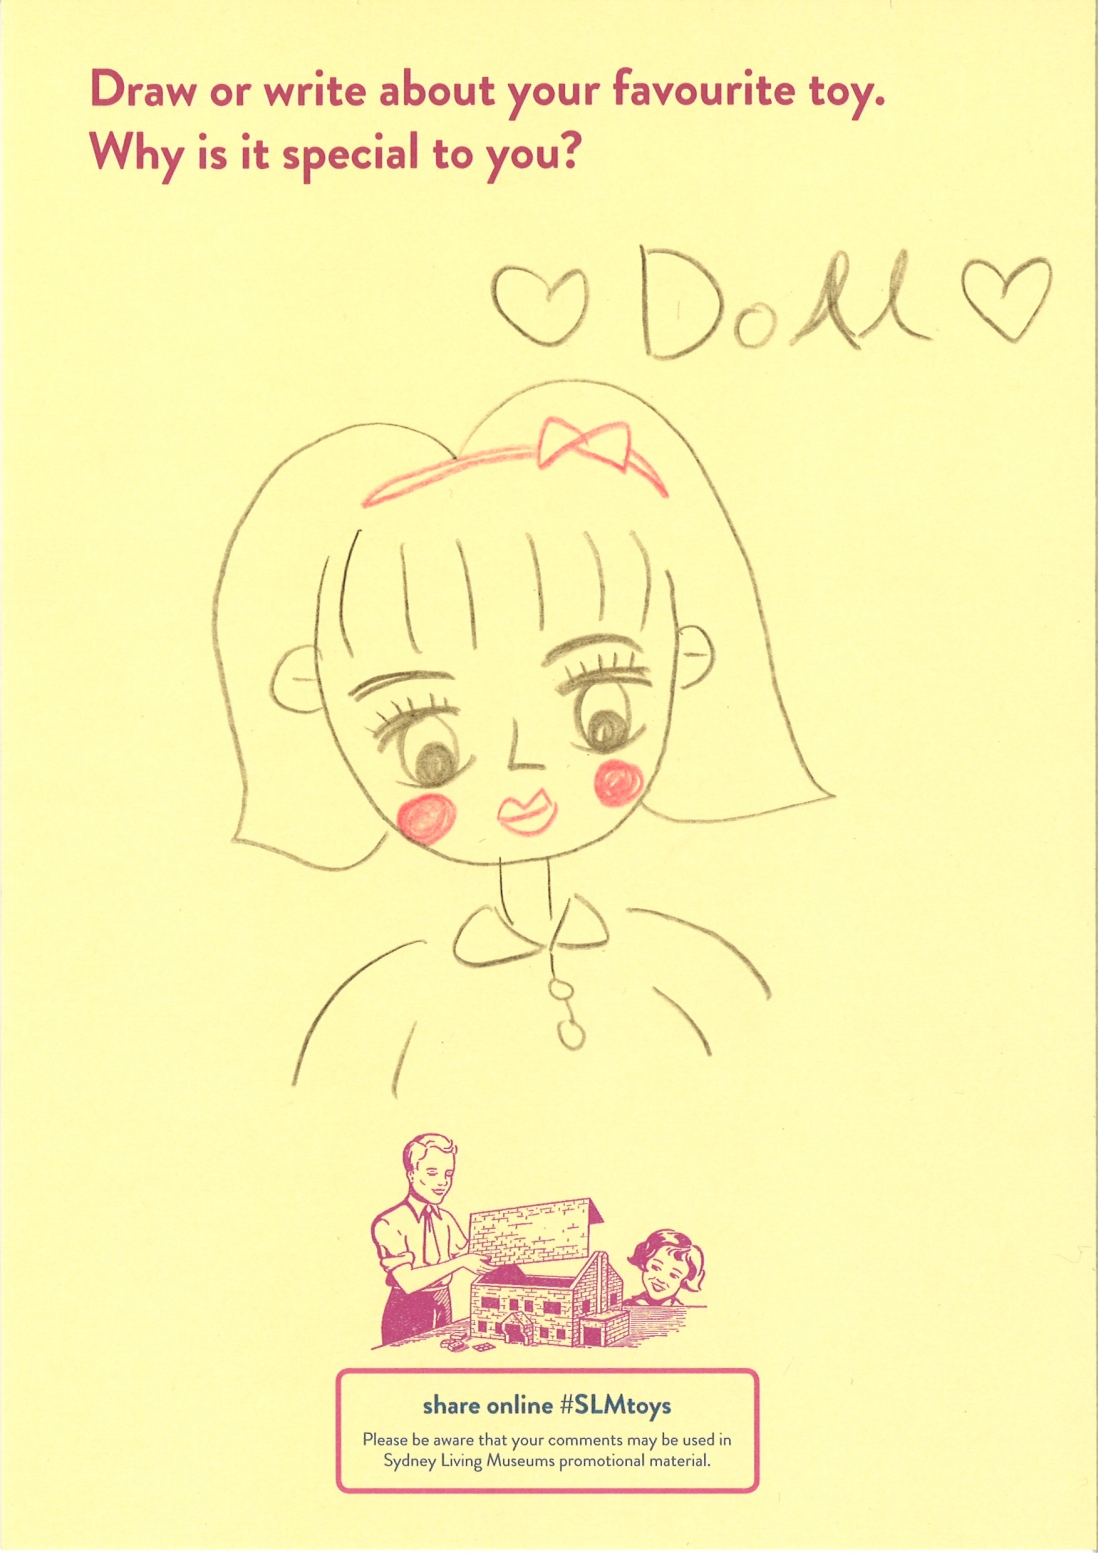 A drawing of  a doll with red cheeks lips and bow in hair